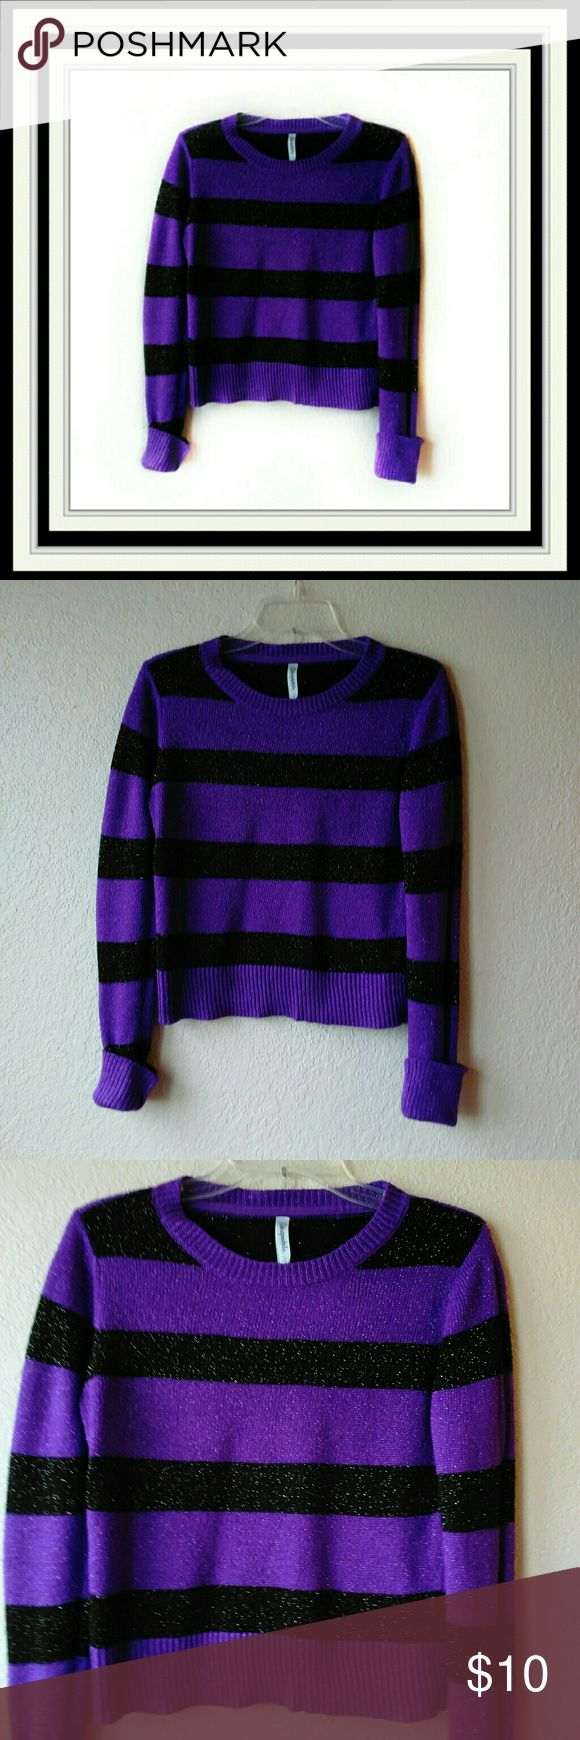 """Aeropostale Long Sleeve Sweater Plum/Purple and Black Striped with metallic threads throughout.  Size Large.  Chest is 19"""".  Length is 21"""".  Measurements are approximate in the flat position.  92% Acrylic, 6% Polyester, 2% other fiber. Aeropostale Sweaters"""